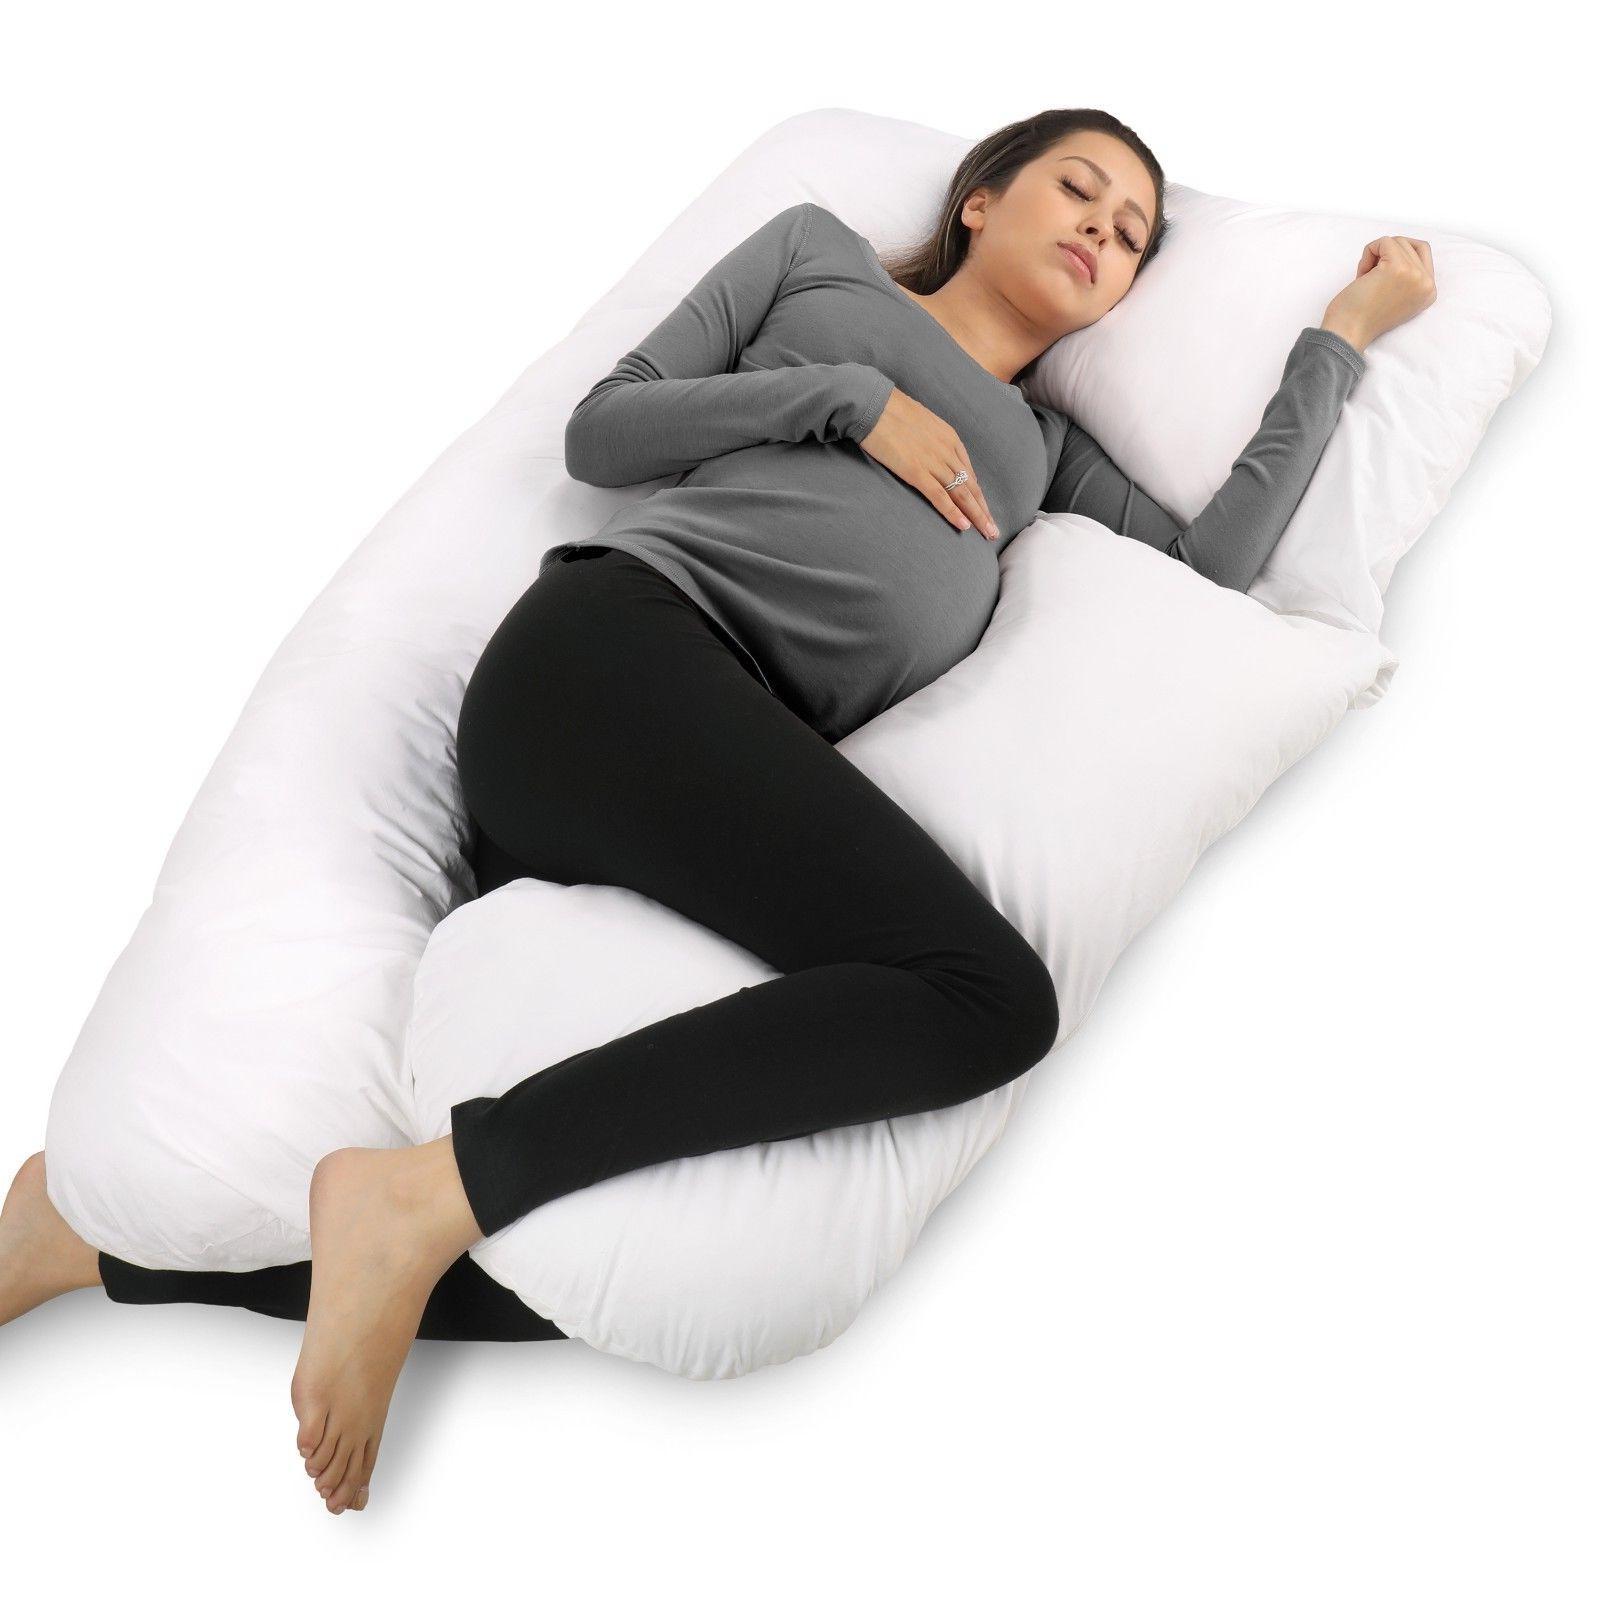 full body pillow u shaped pregnancy pillow